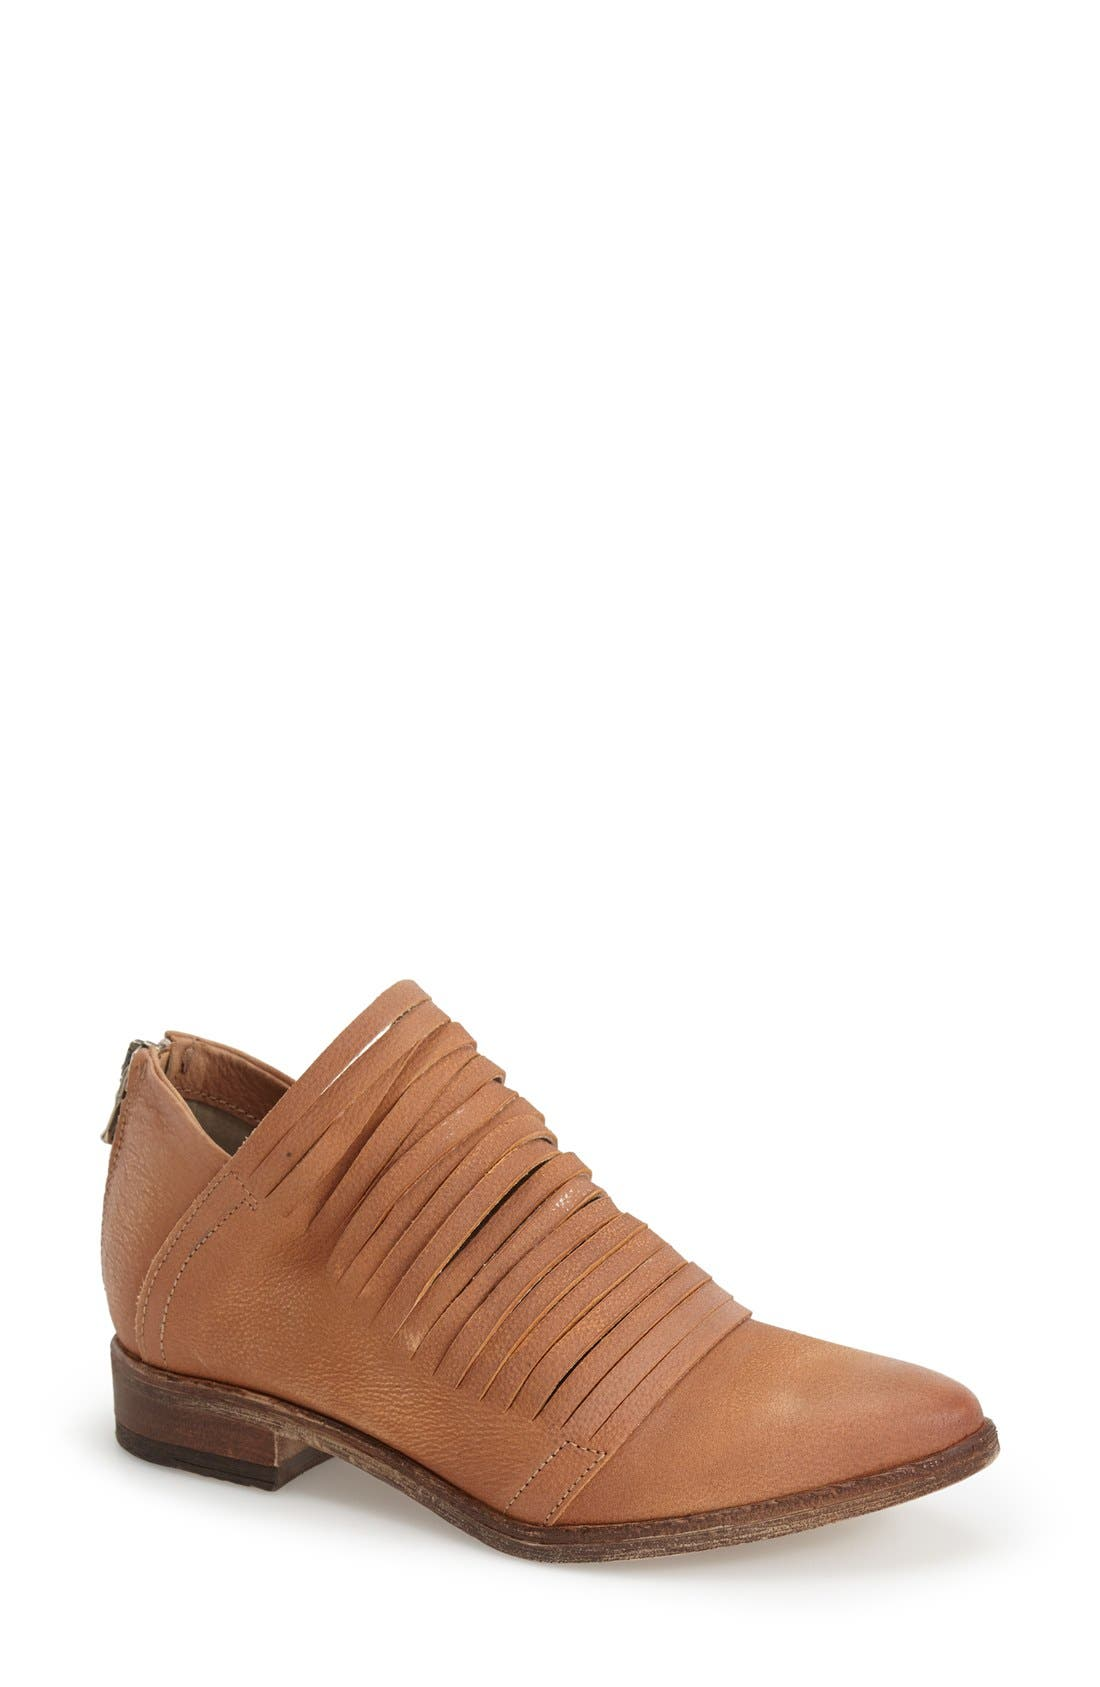 Main Image - Free People Lost Valley Bootie (Women)